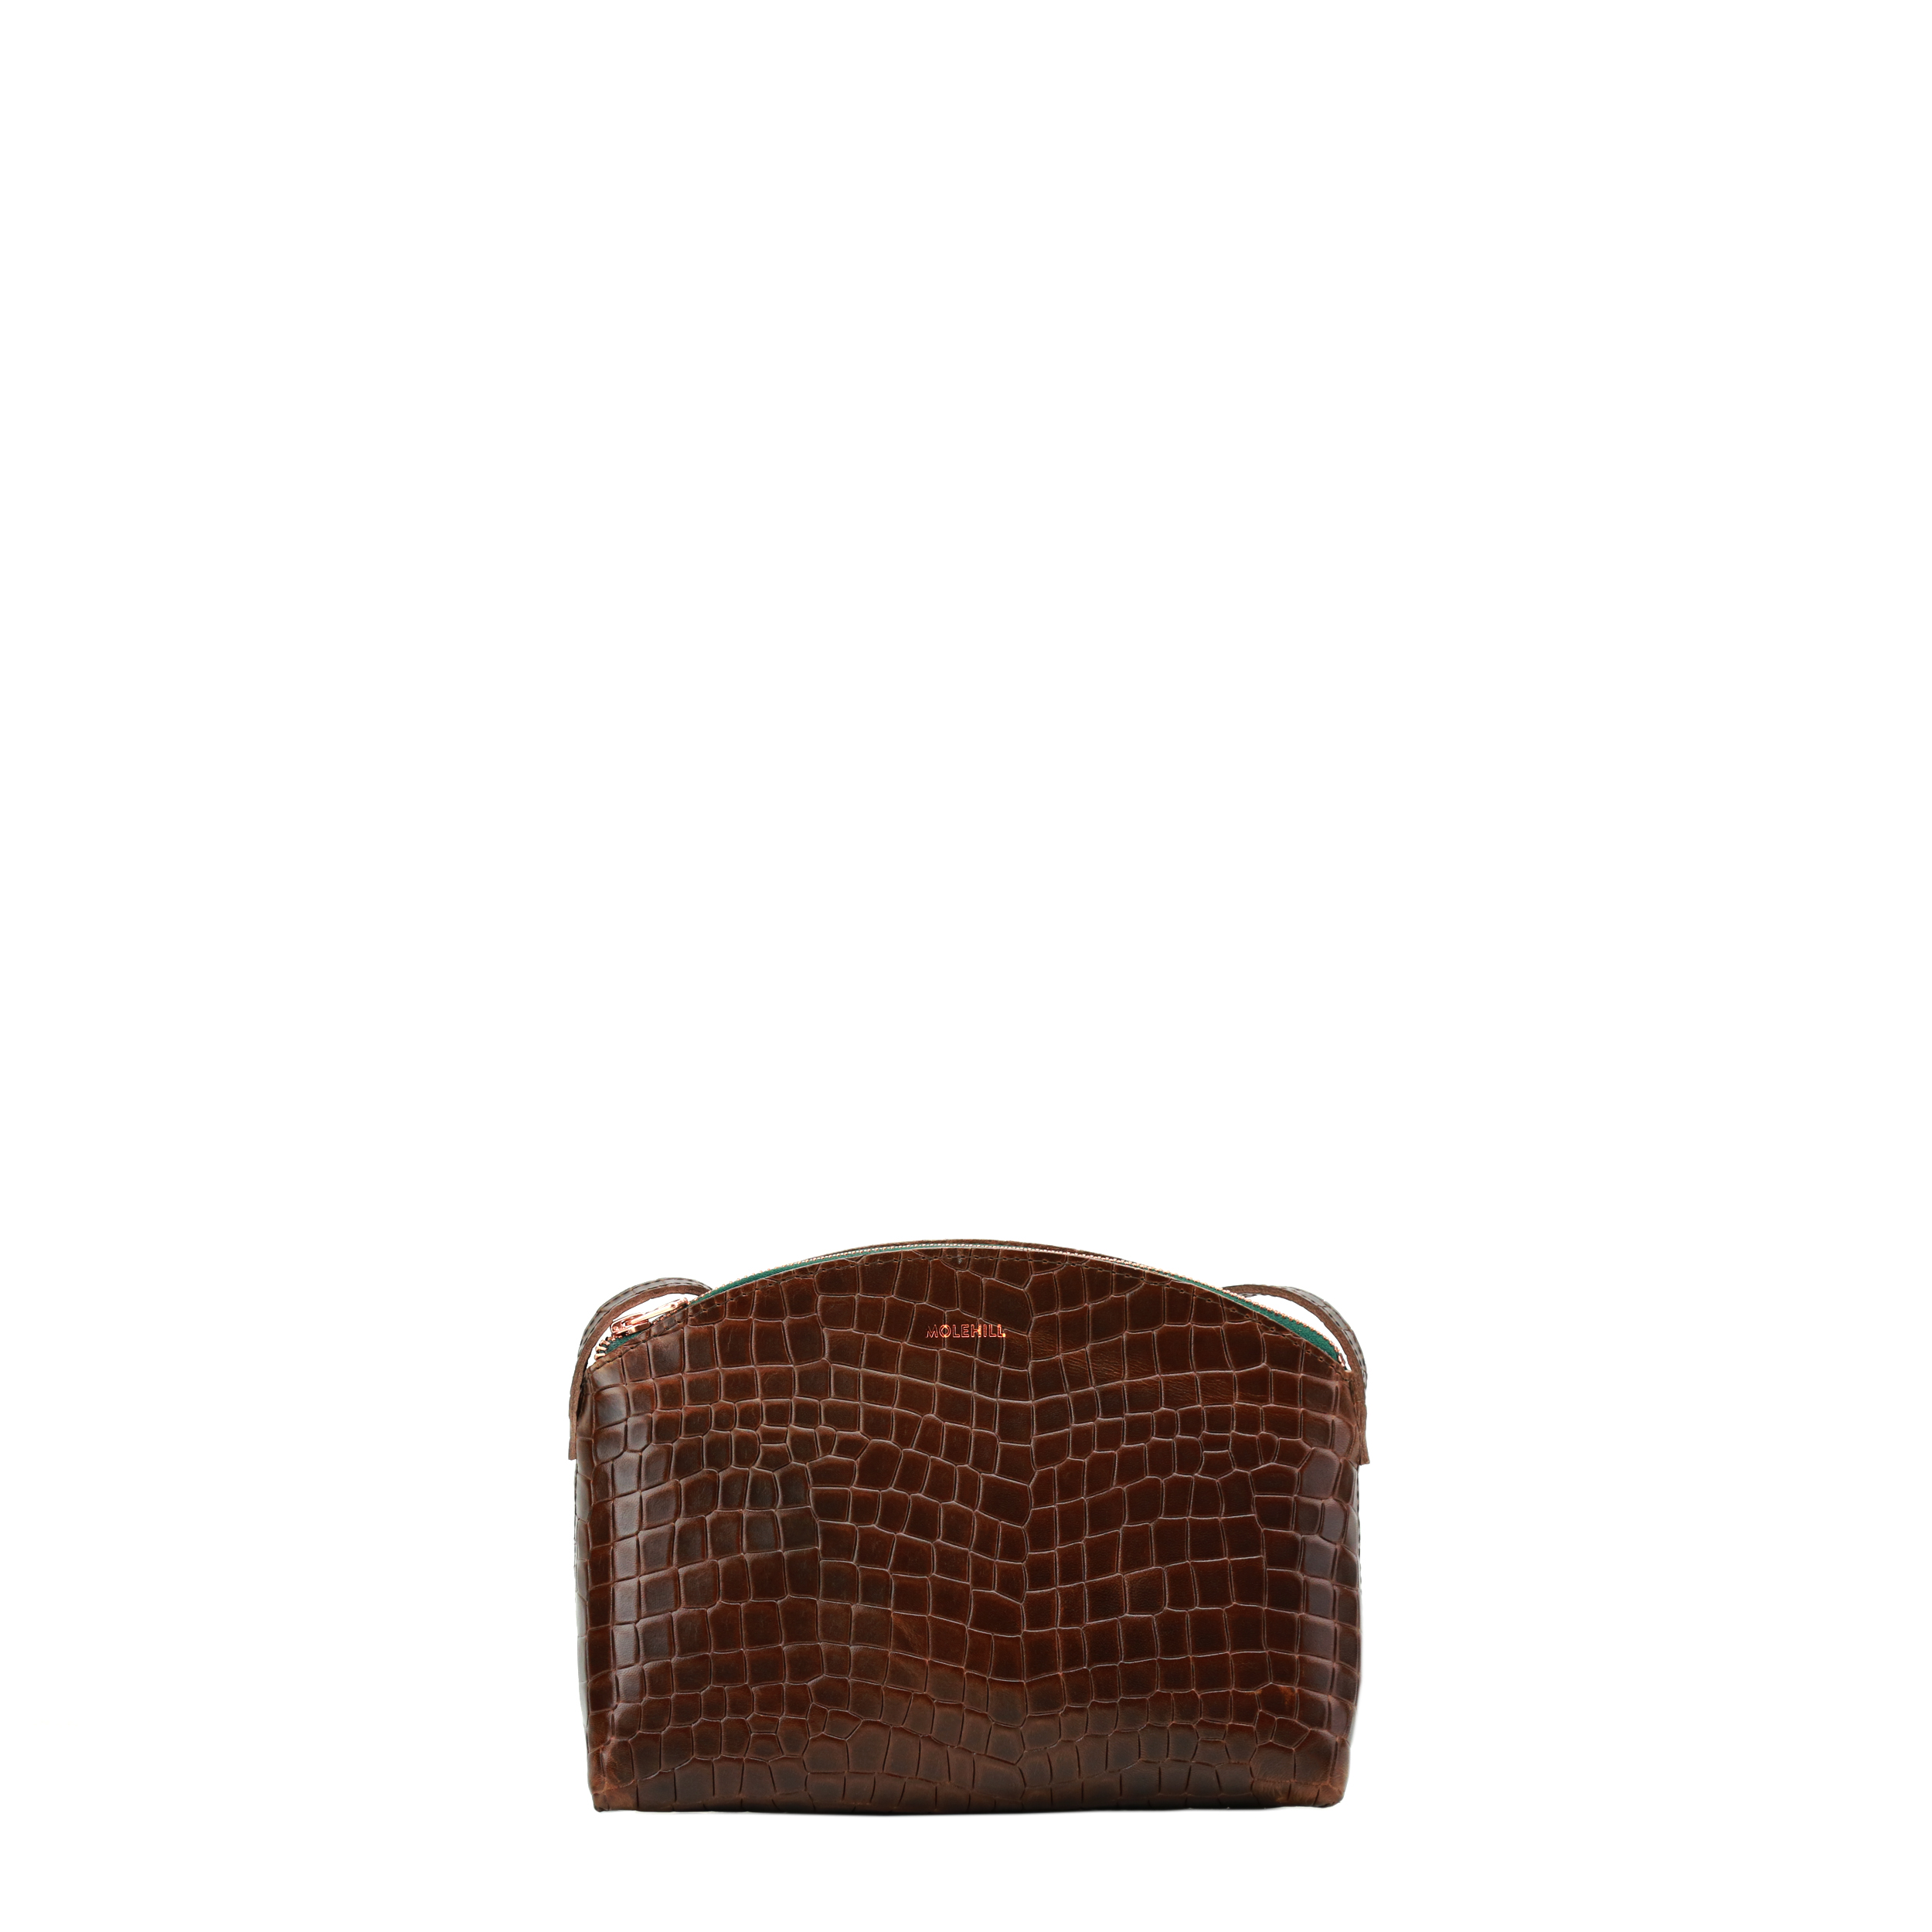 TIMI-Crossbody-Bag-Croco-1